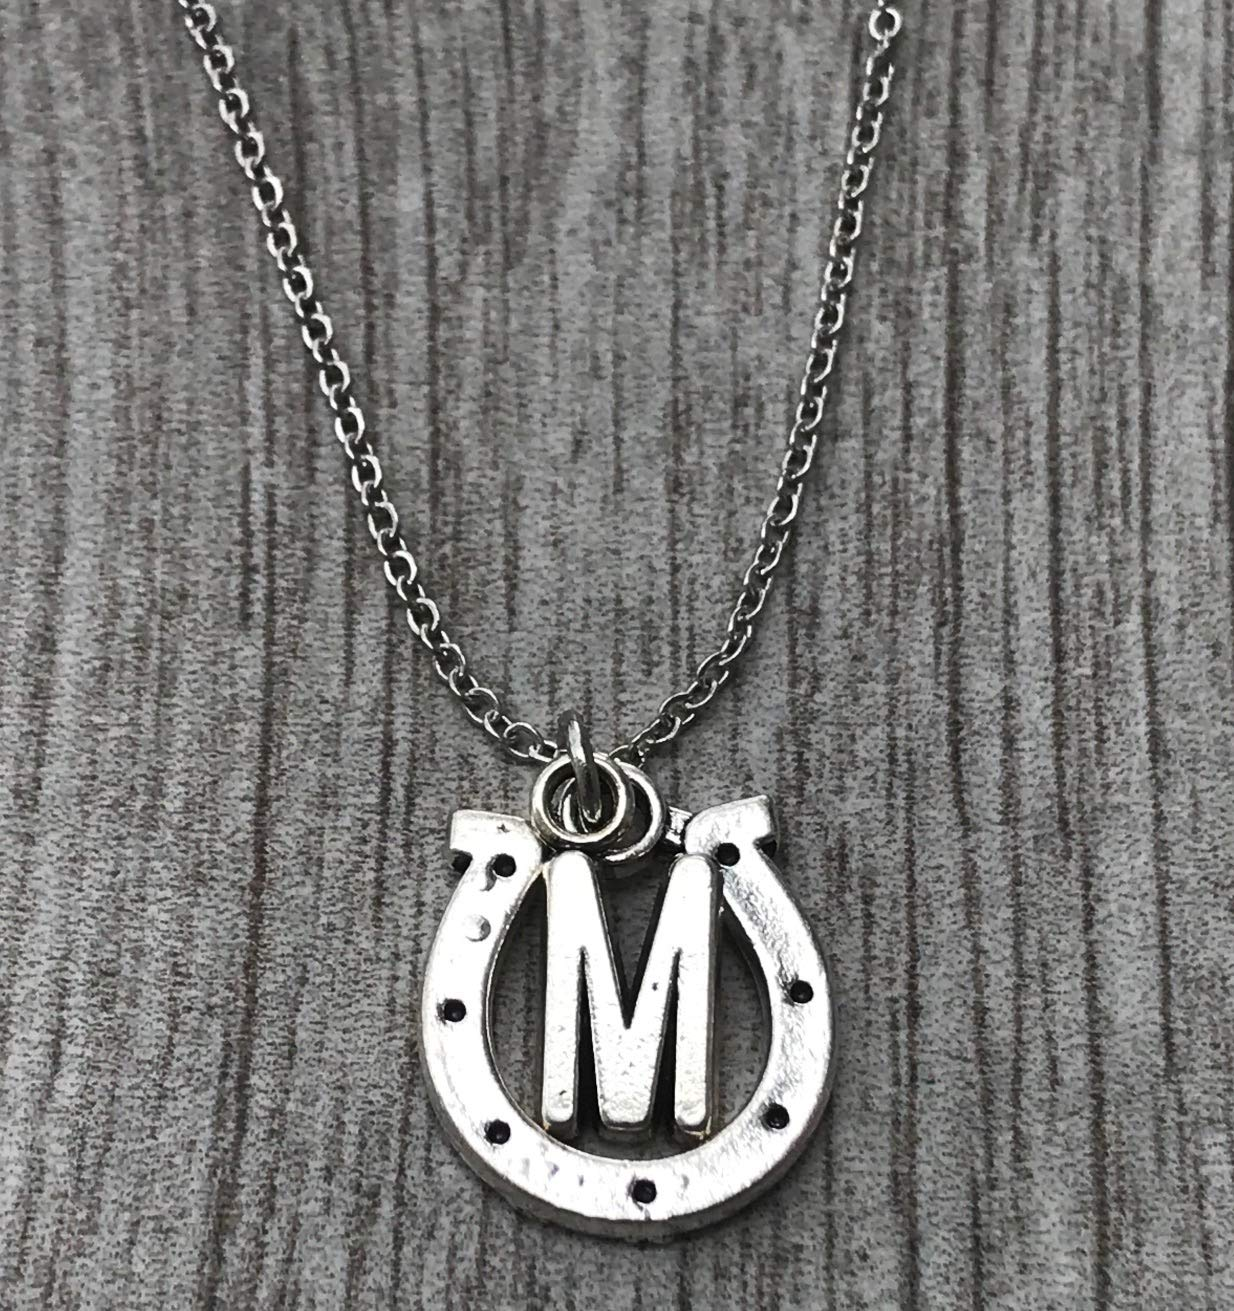 Amazon Com Personalized Horse Necklace With Letter Charm Pet Horse Jewelry Racing Horse Pendant Equestrian Gift Ideas Horseshoe Charm Necklace Handmade